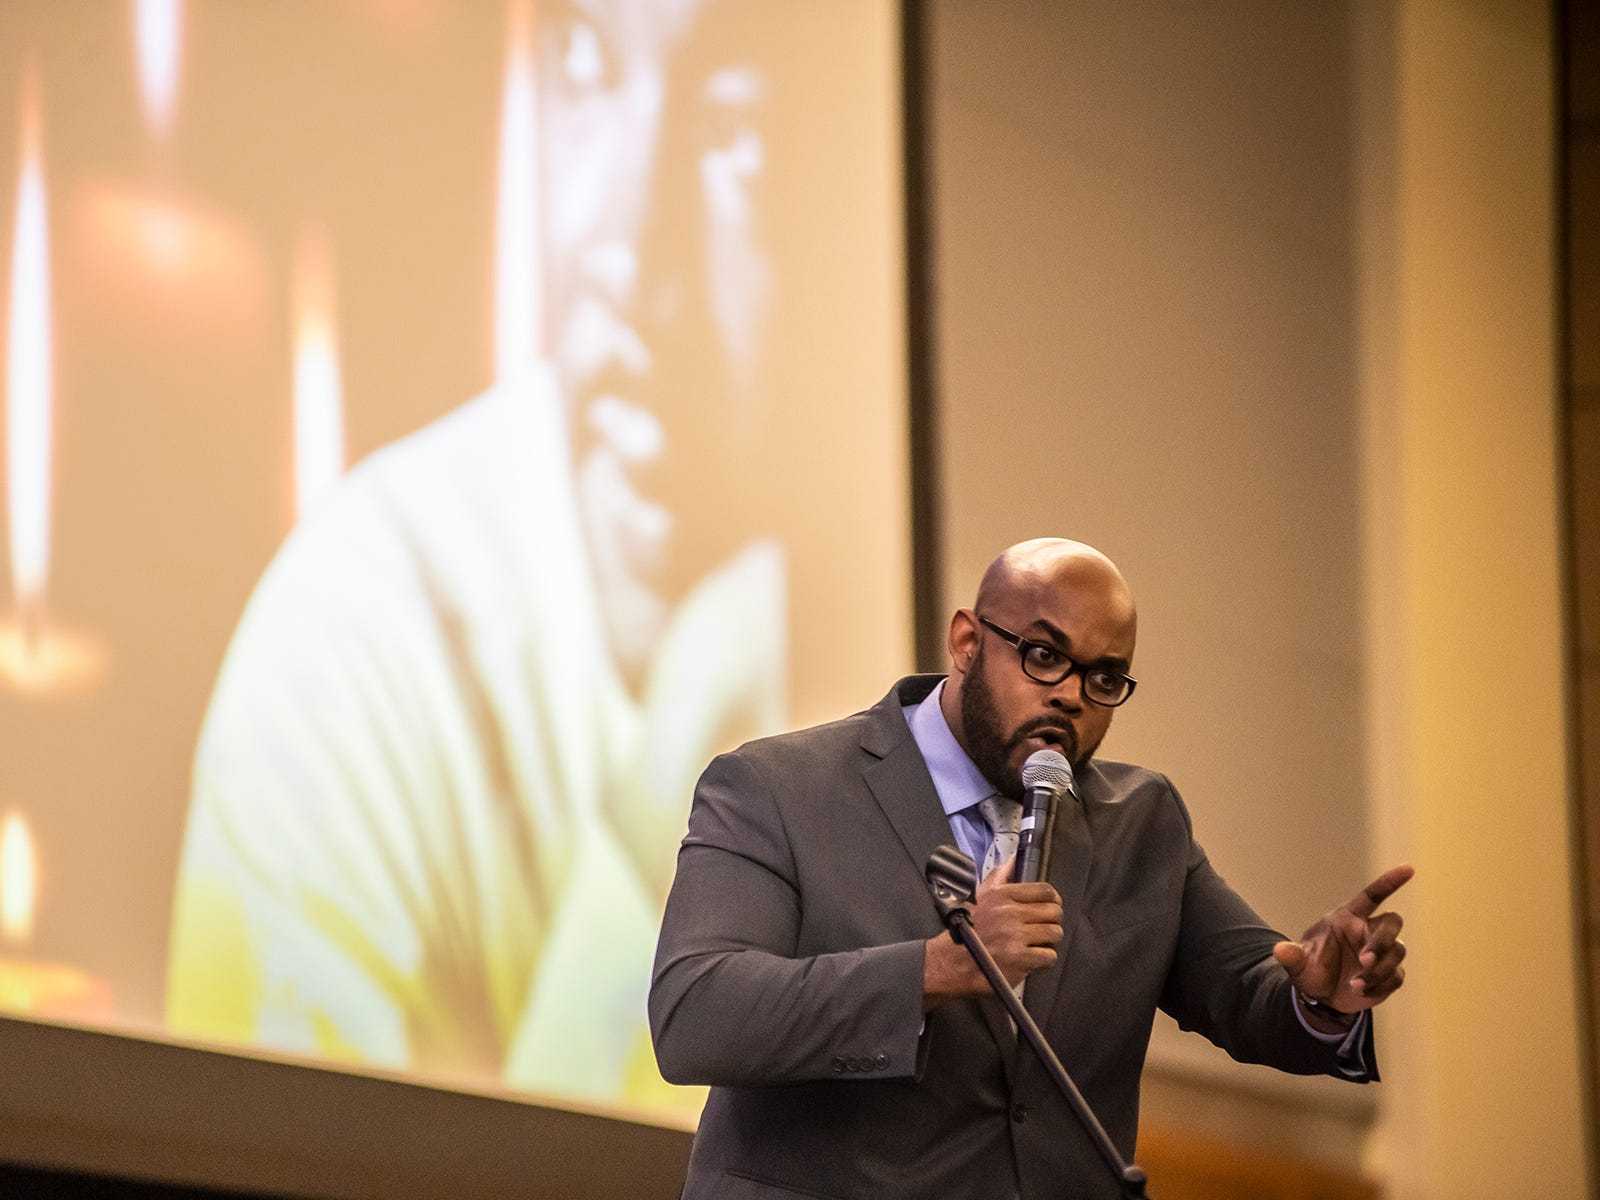 Aaron Treadway, assistant professor of history at MTSU, delivers the keynote address at the university's candlelight vigil in observance of Martin Luther King Jr. Day, Jan. 21, 2019.